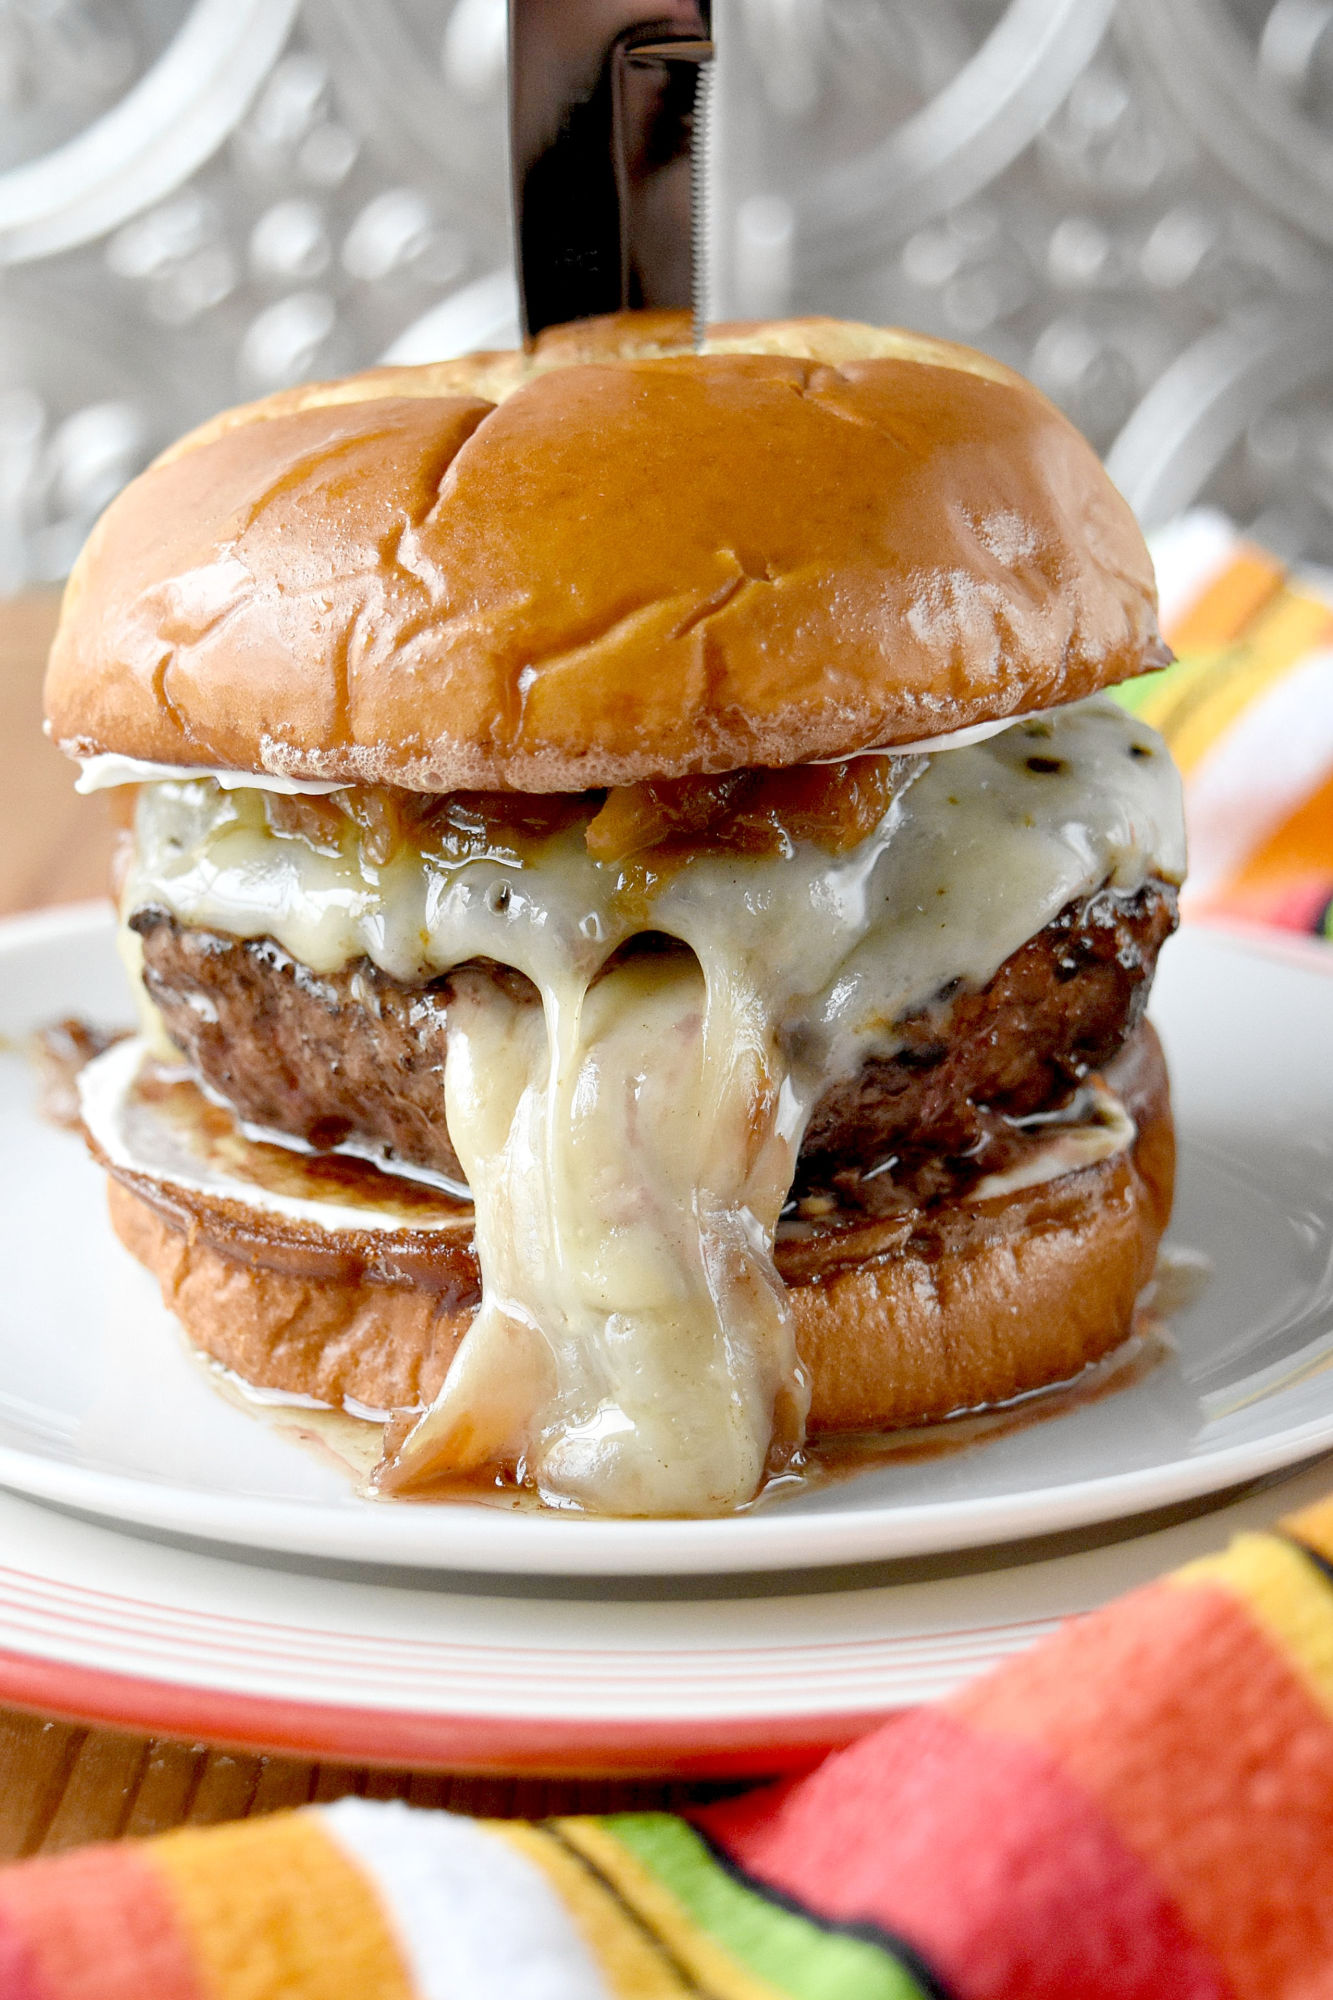 The caramelized onions make this French Onion Soup Burger over the top. It's a labor of love but makes for one killer burger. #BurgerMonth